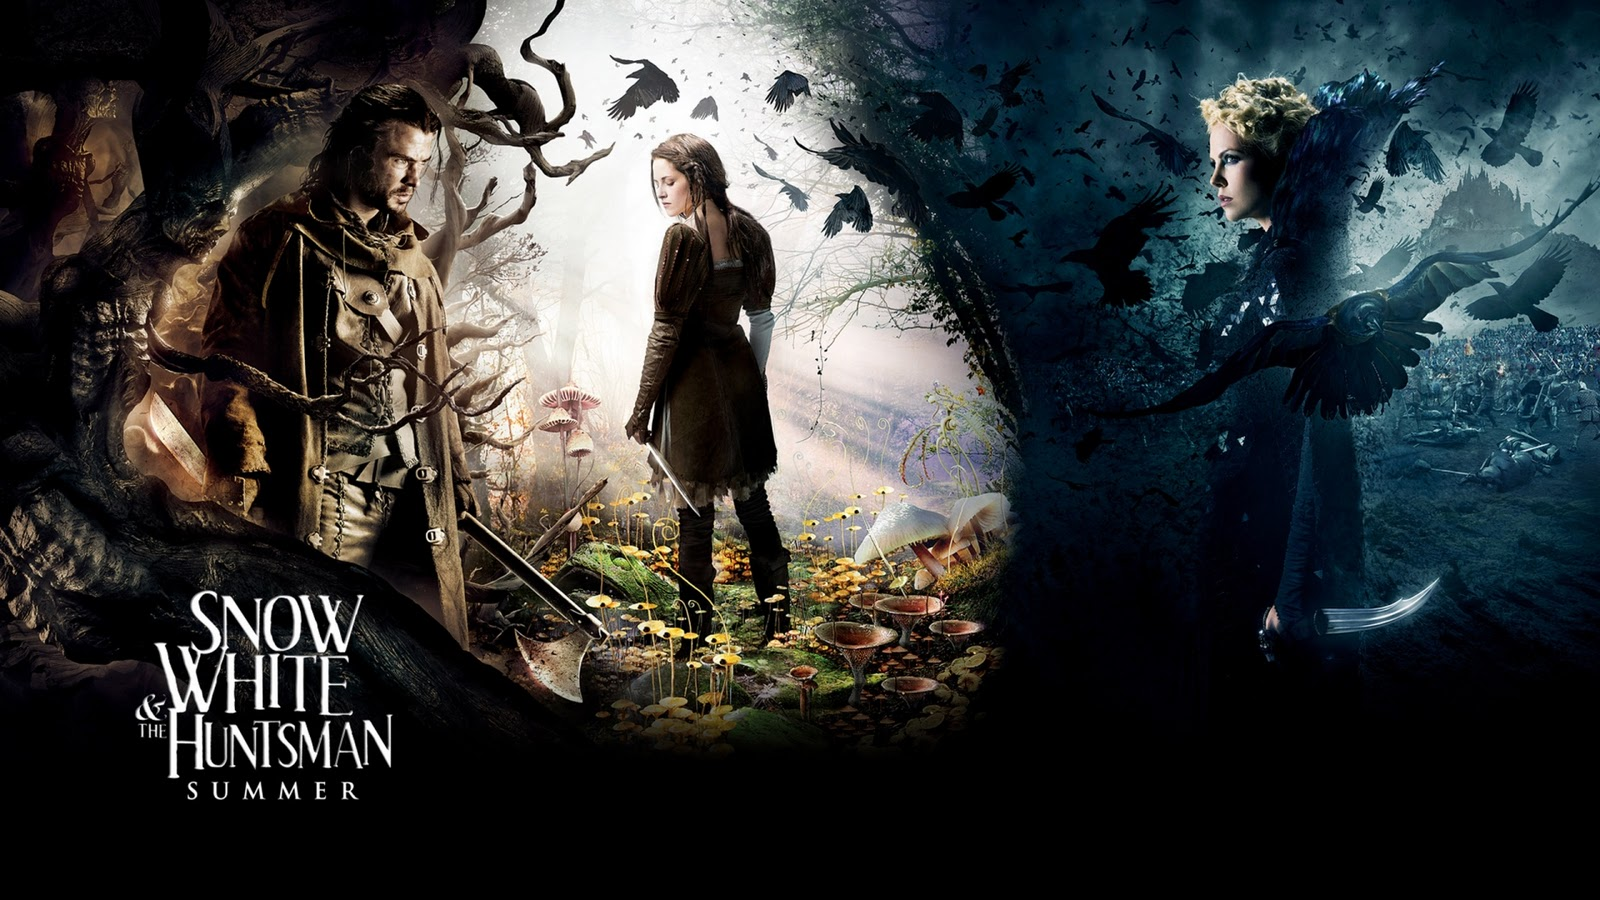 http://2.bp.blogspot.com/-TJ4NCe_nNC8/TxxkqGkz19I/AAAAAAAAAmg/RTpGWIm-VkE/s1600/The-Snow-White-Huntsman-Movie-Wallpaper-1080p-HD.jpg